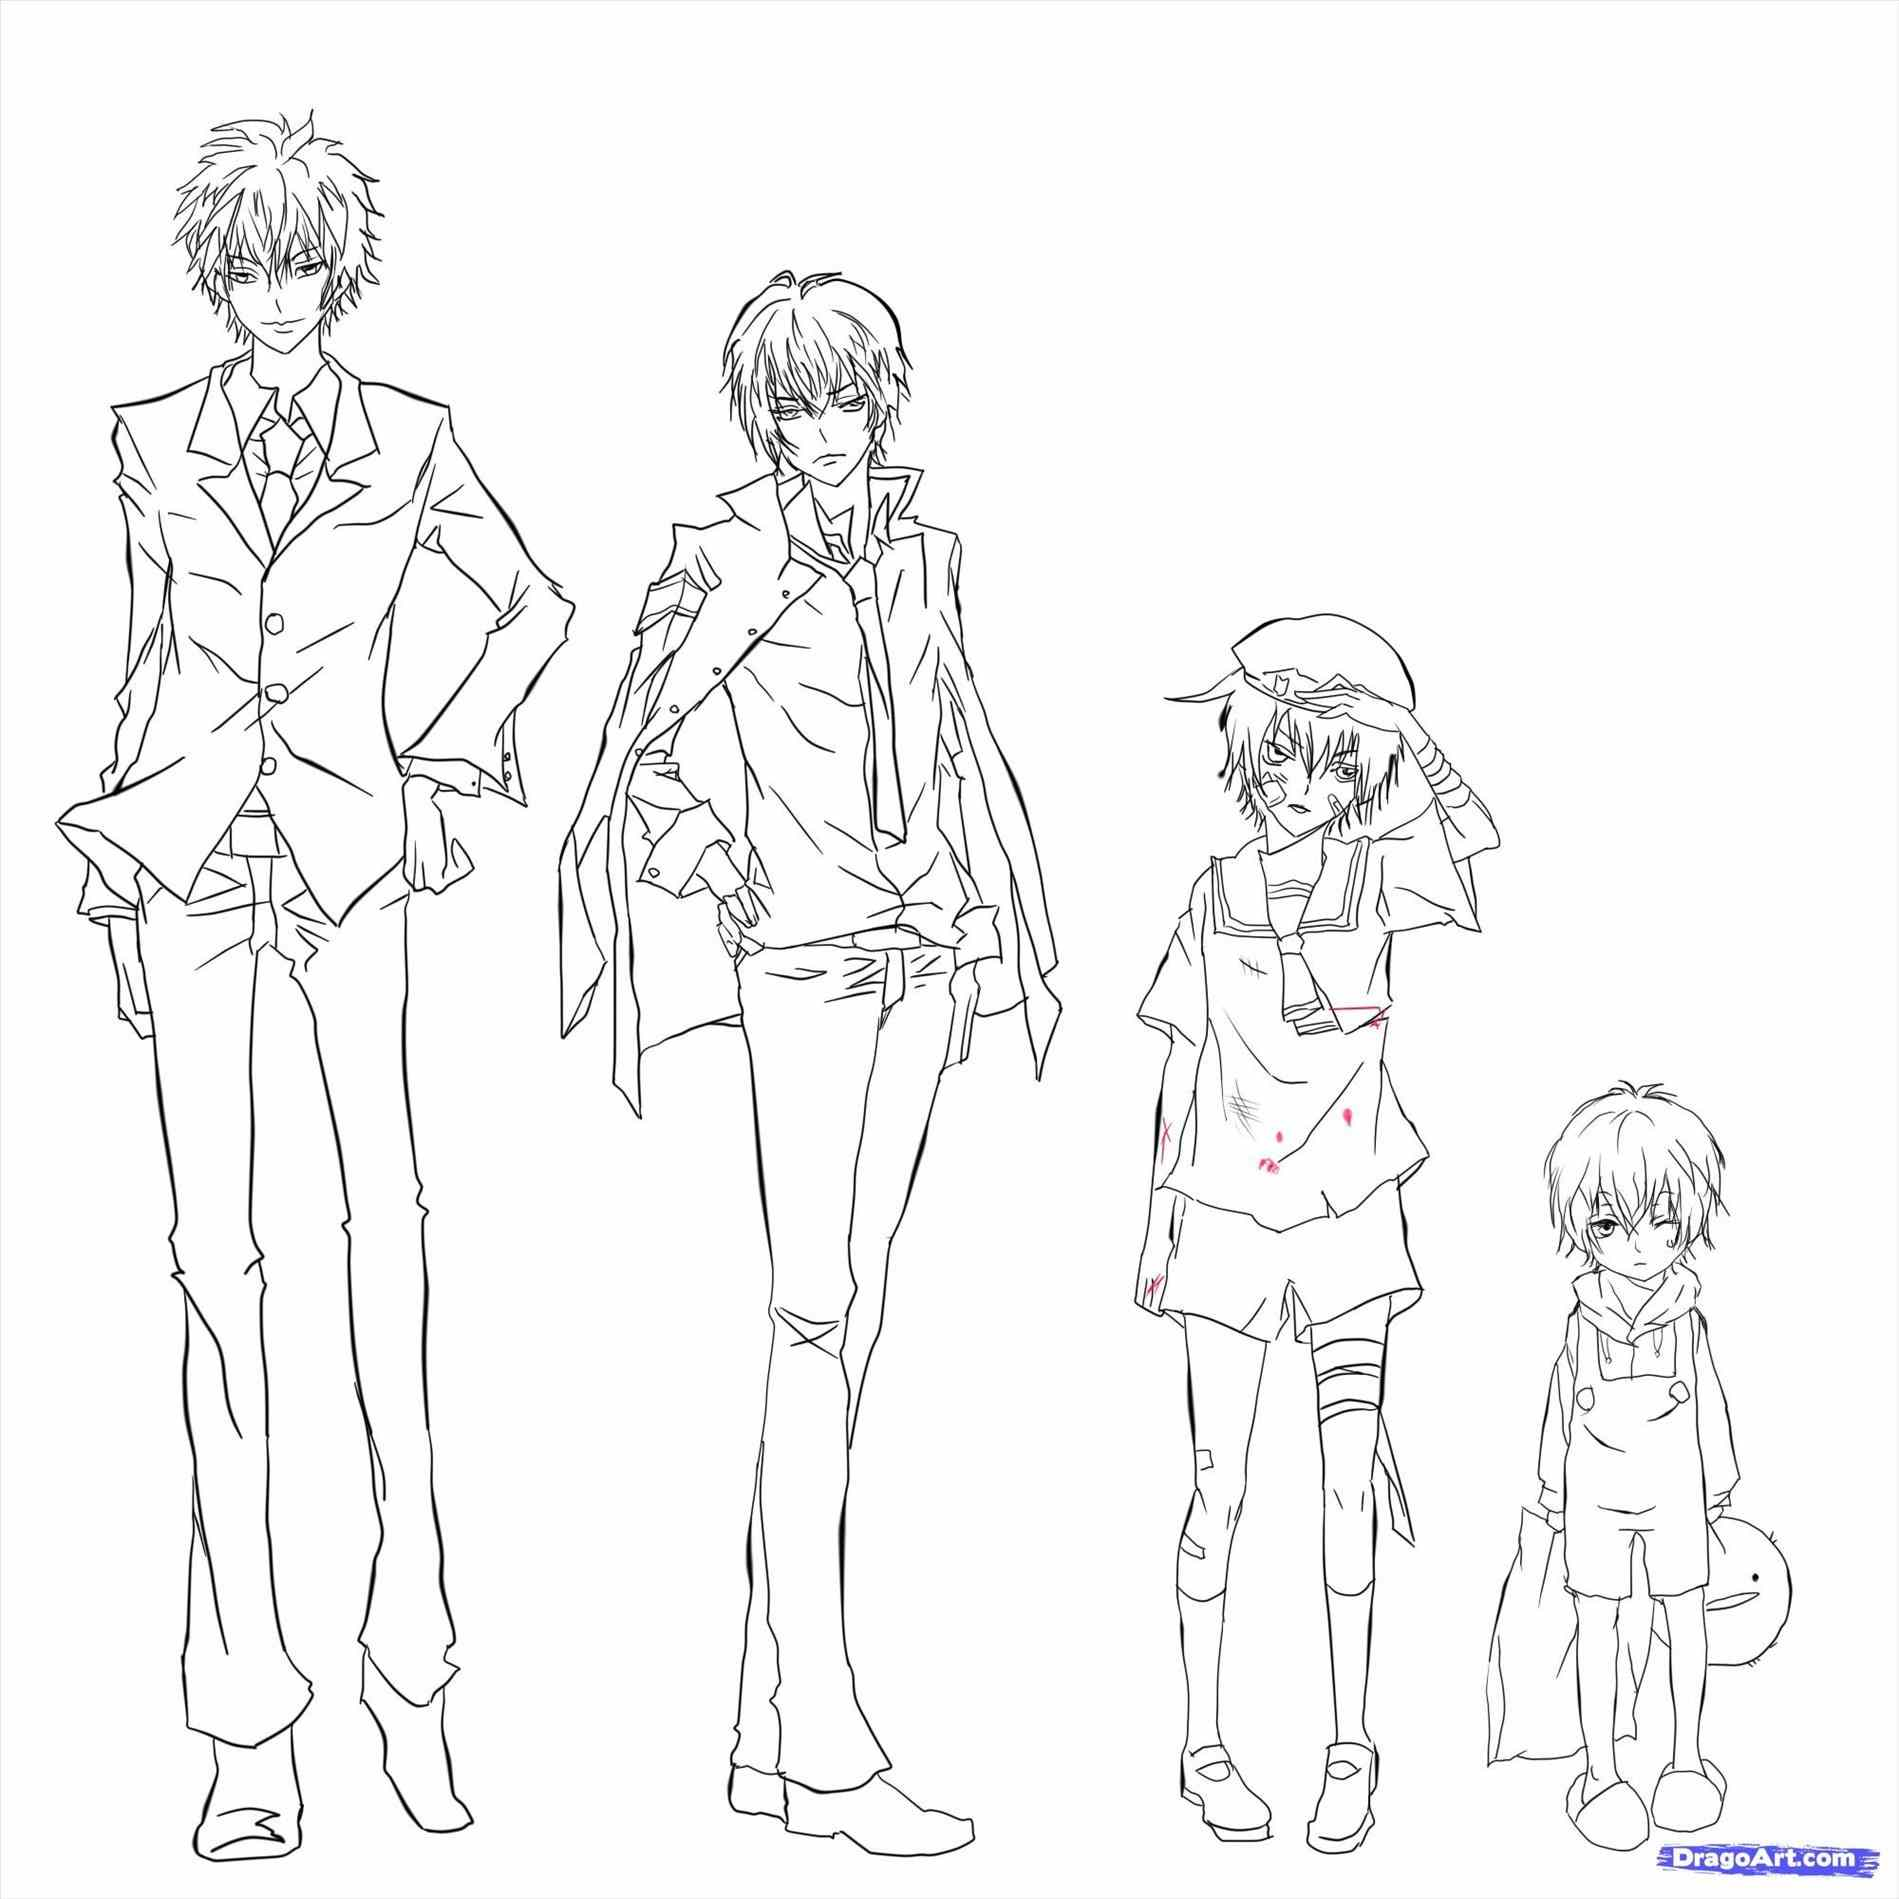 1899x1899 Outfits Looking Japanese Anime Drawings For Art Cosplay Outfits